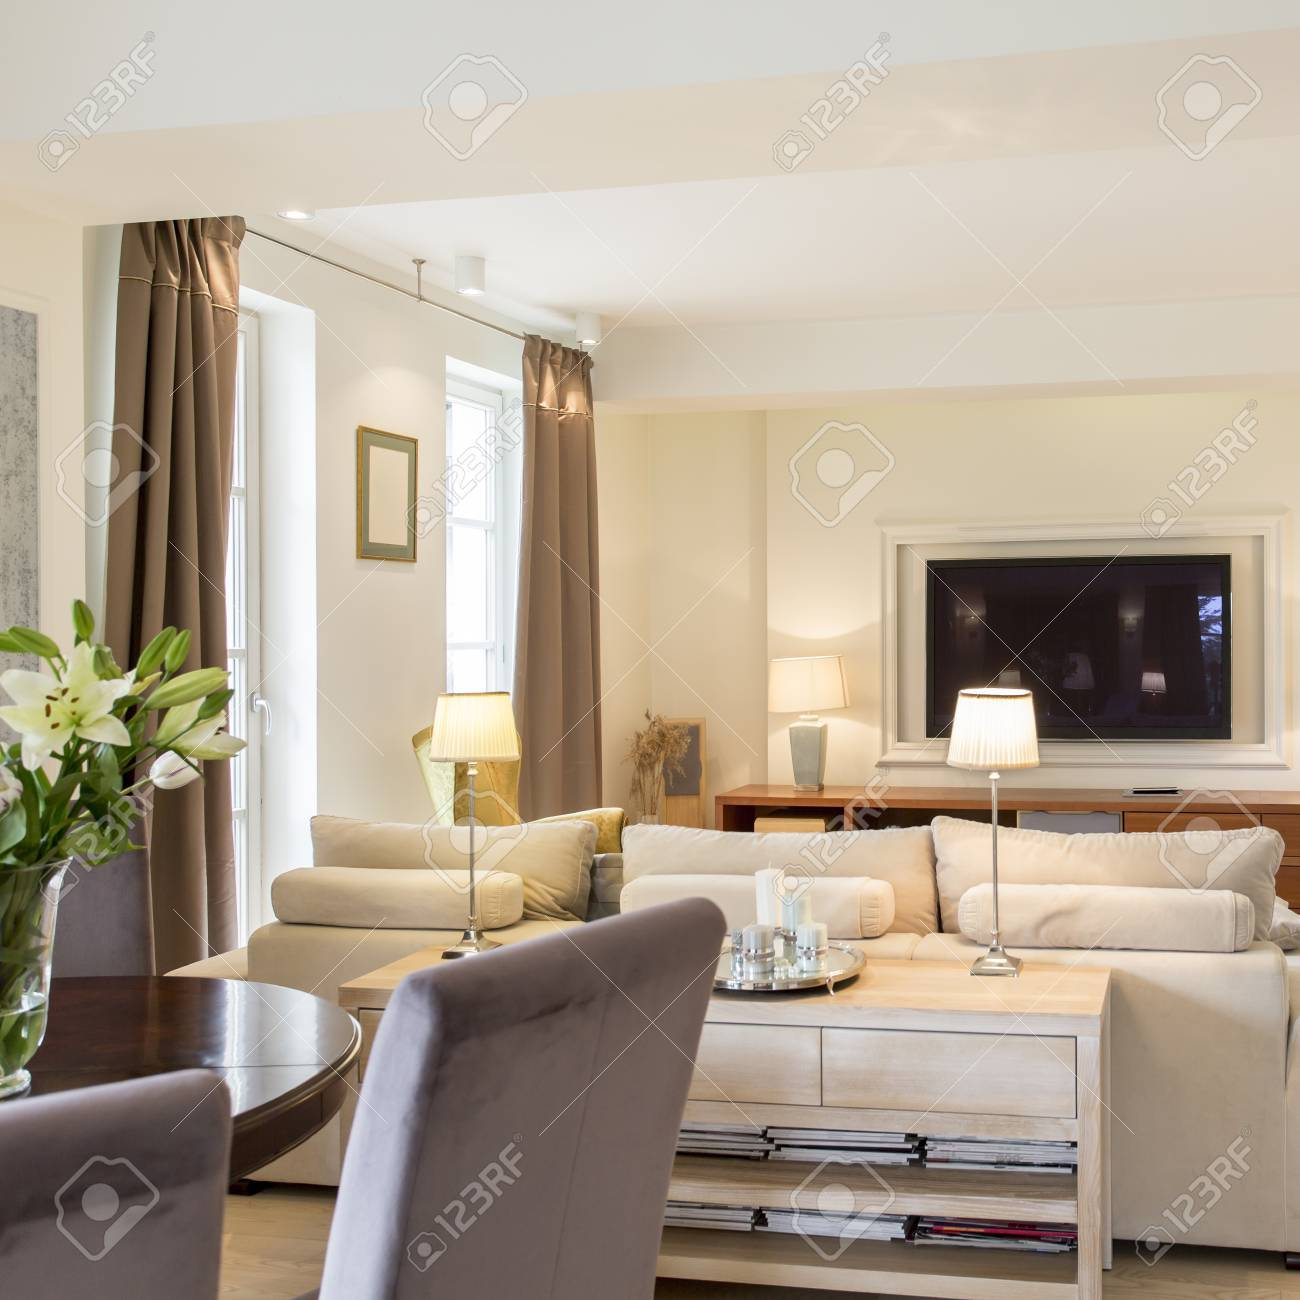 Modern Living Room With Stylish Furniture And Tv Set Open To Stock Photo Picture And Royalty Free Image Image 81575794